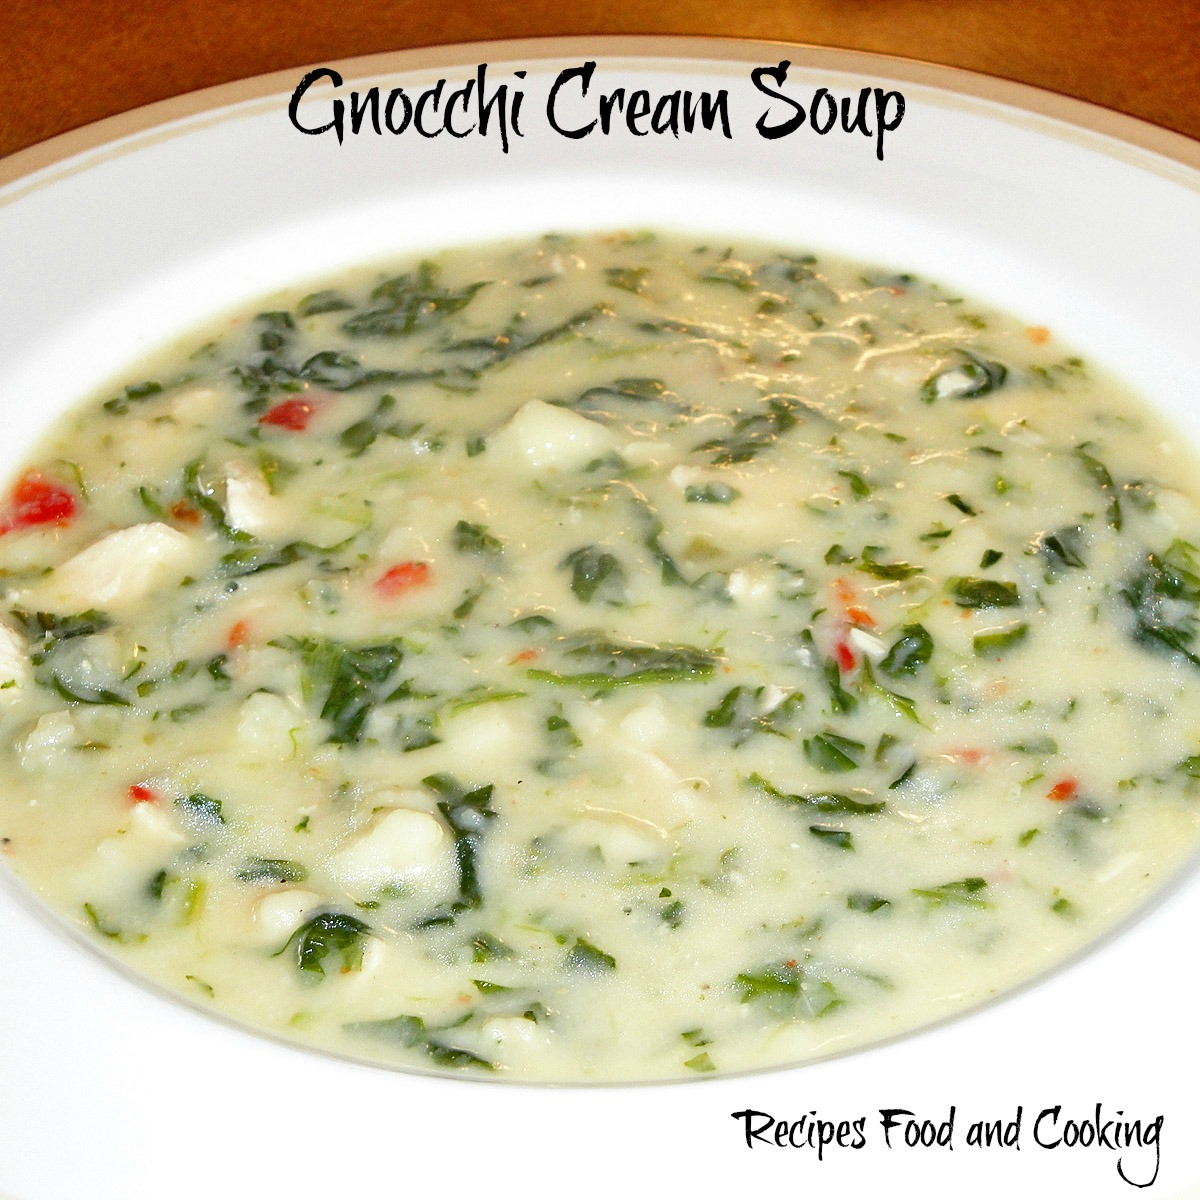 Gnocchi Cream Soup Recipes Food And Cooking